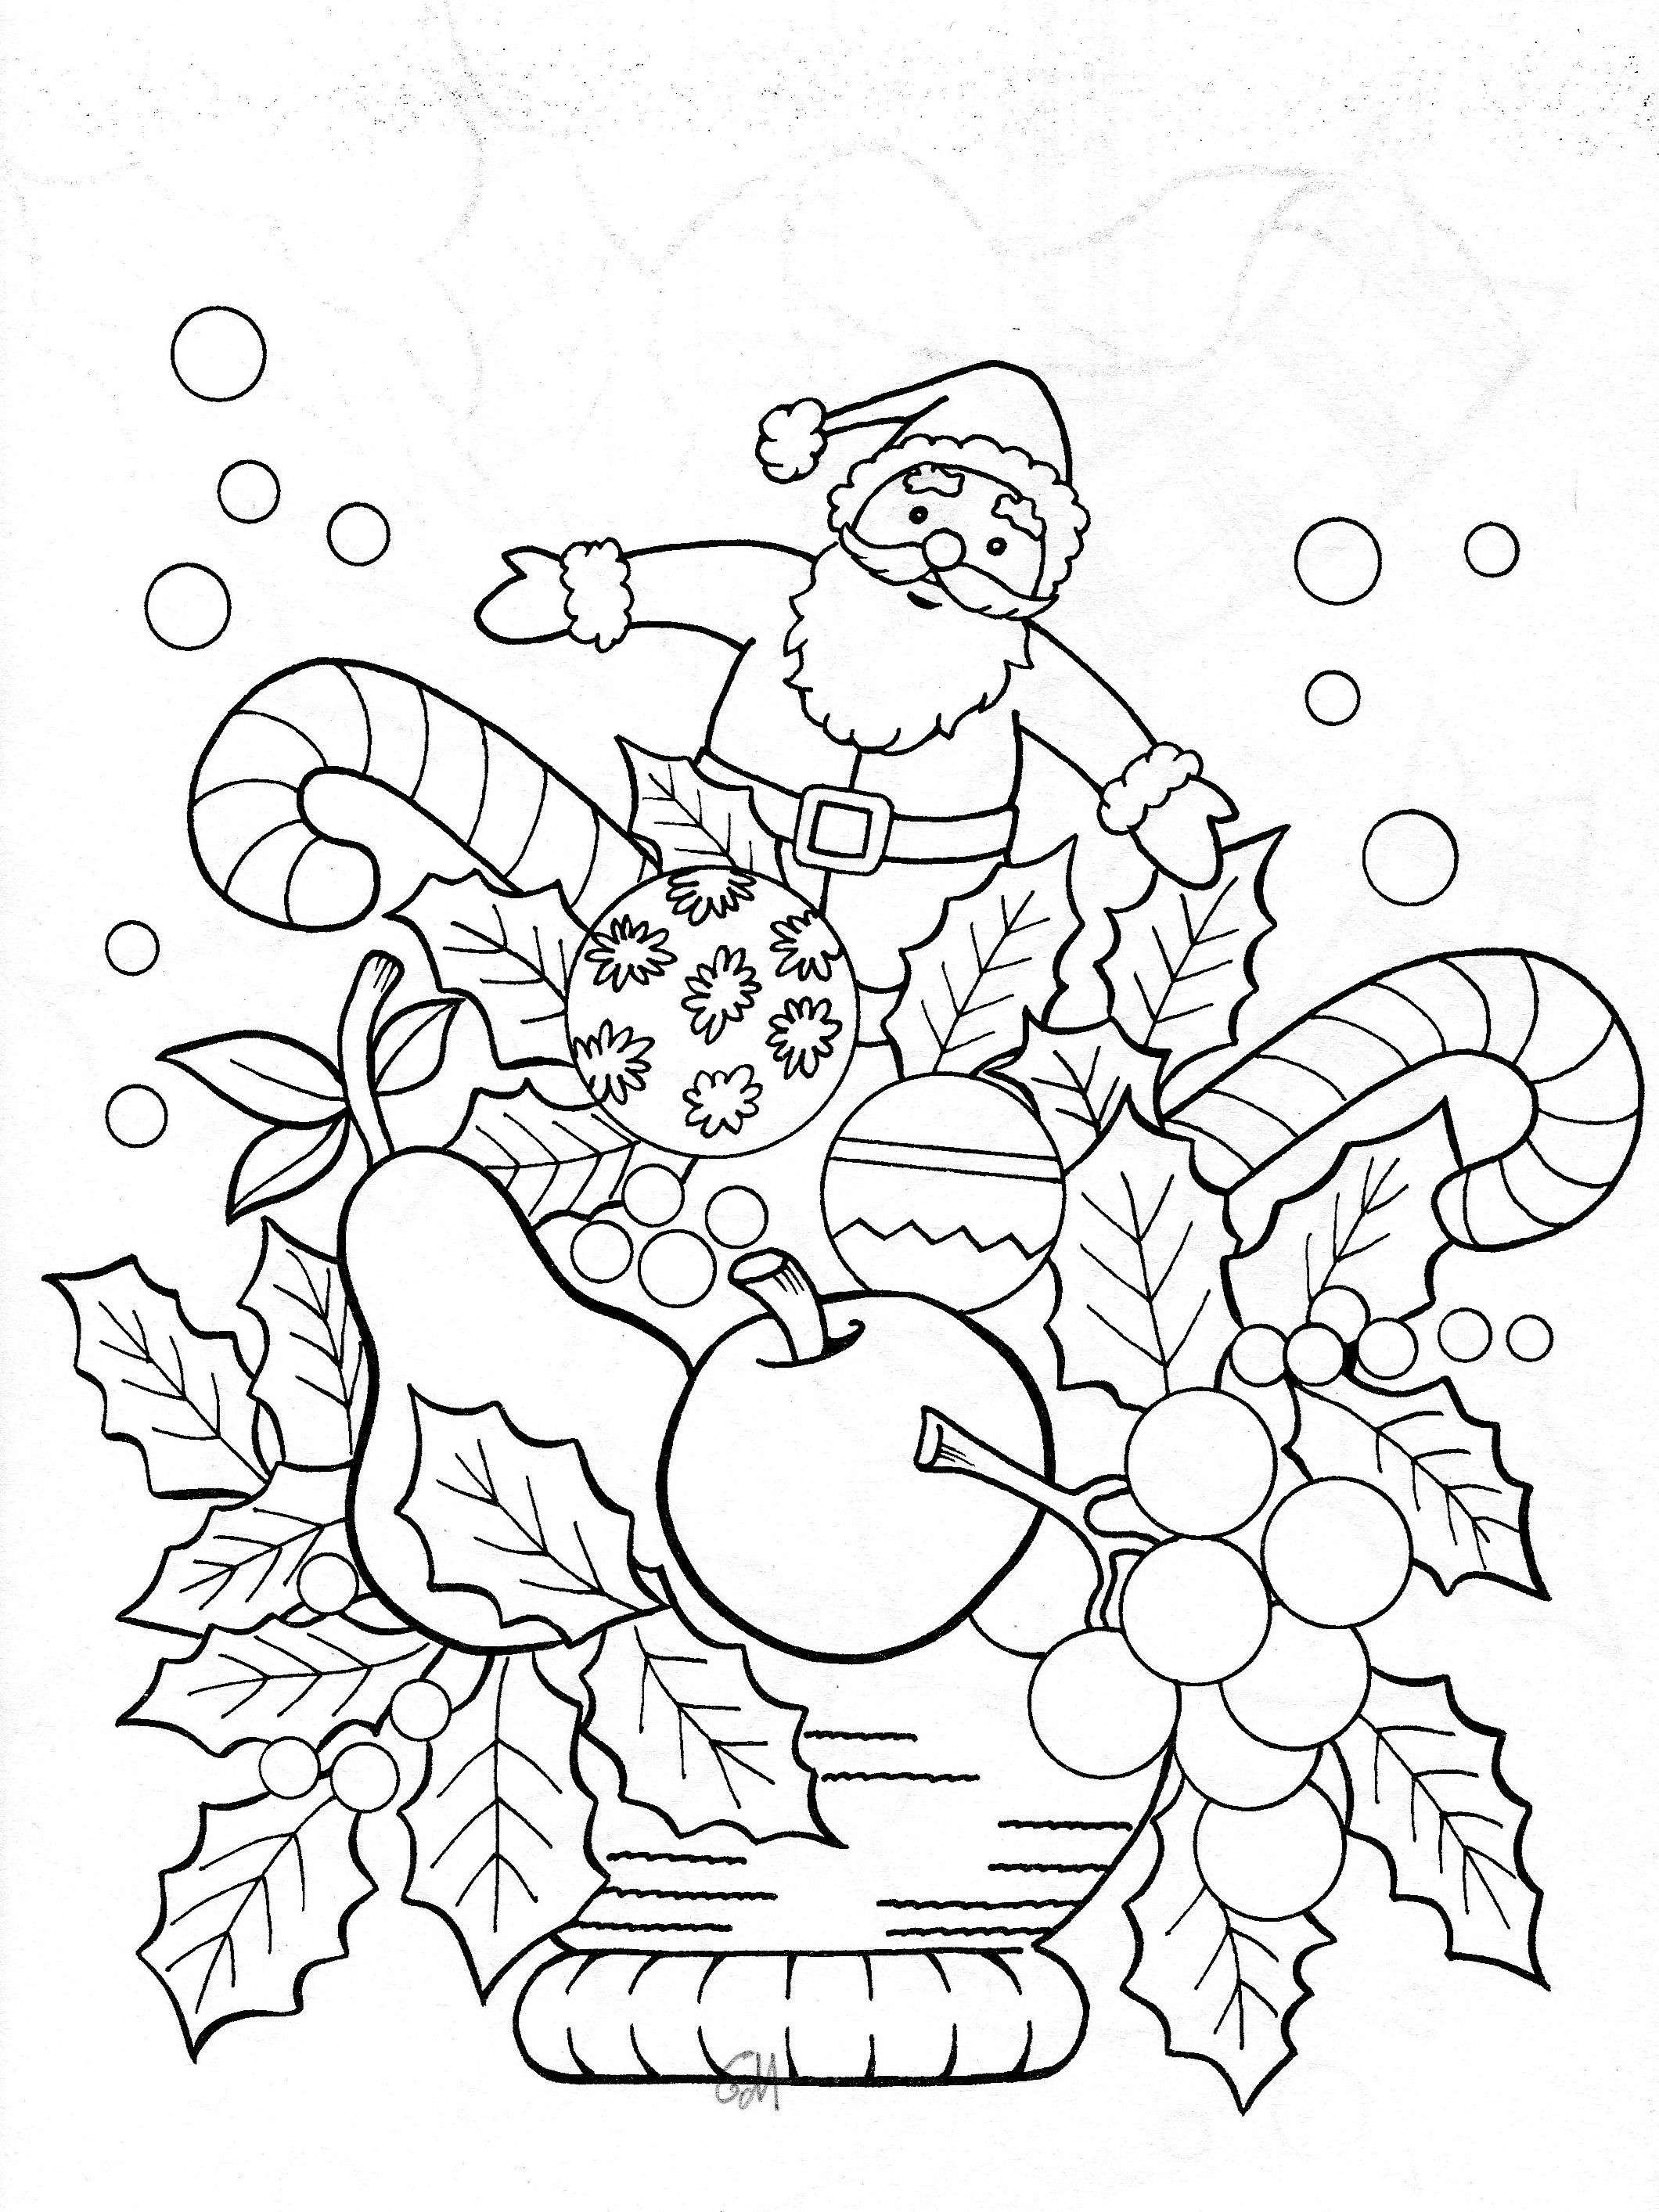 Christmas Horse Coloring Pictures With Printable Pages Of Horses